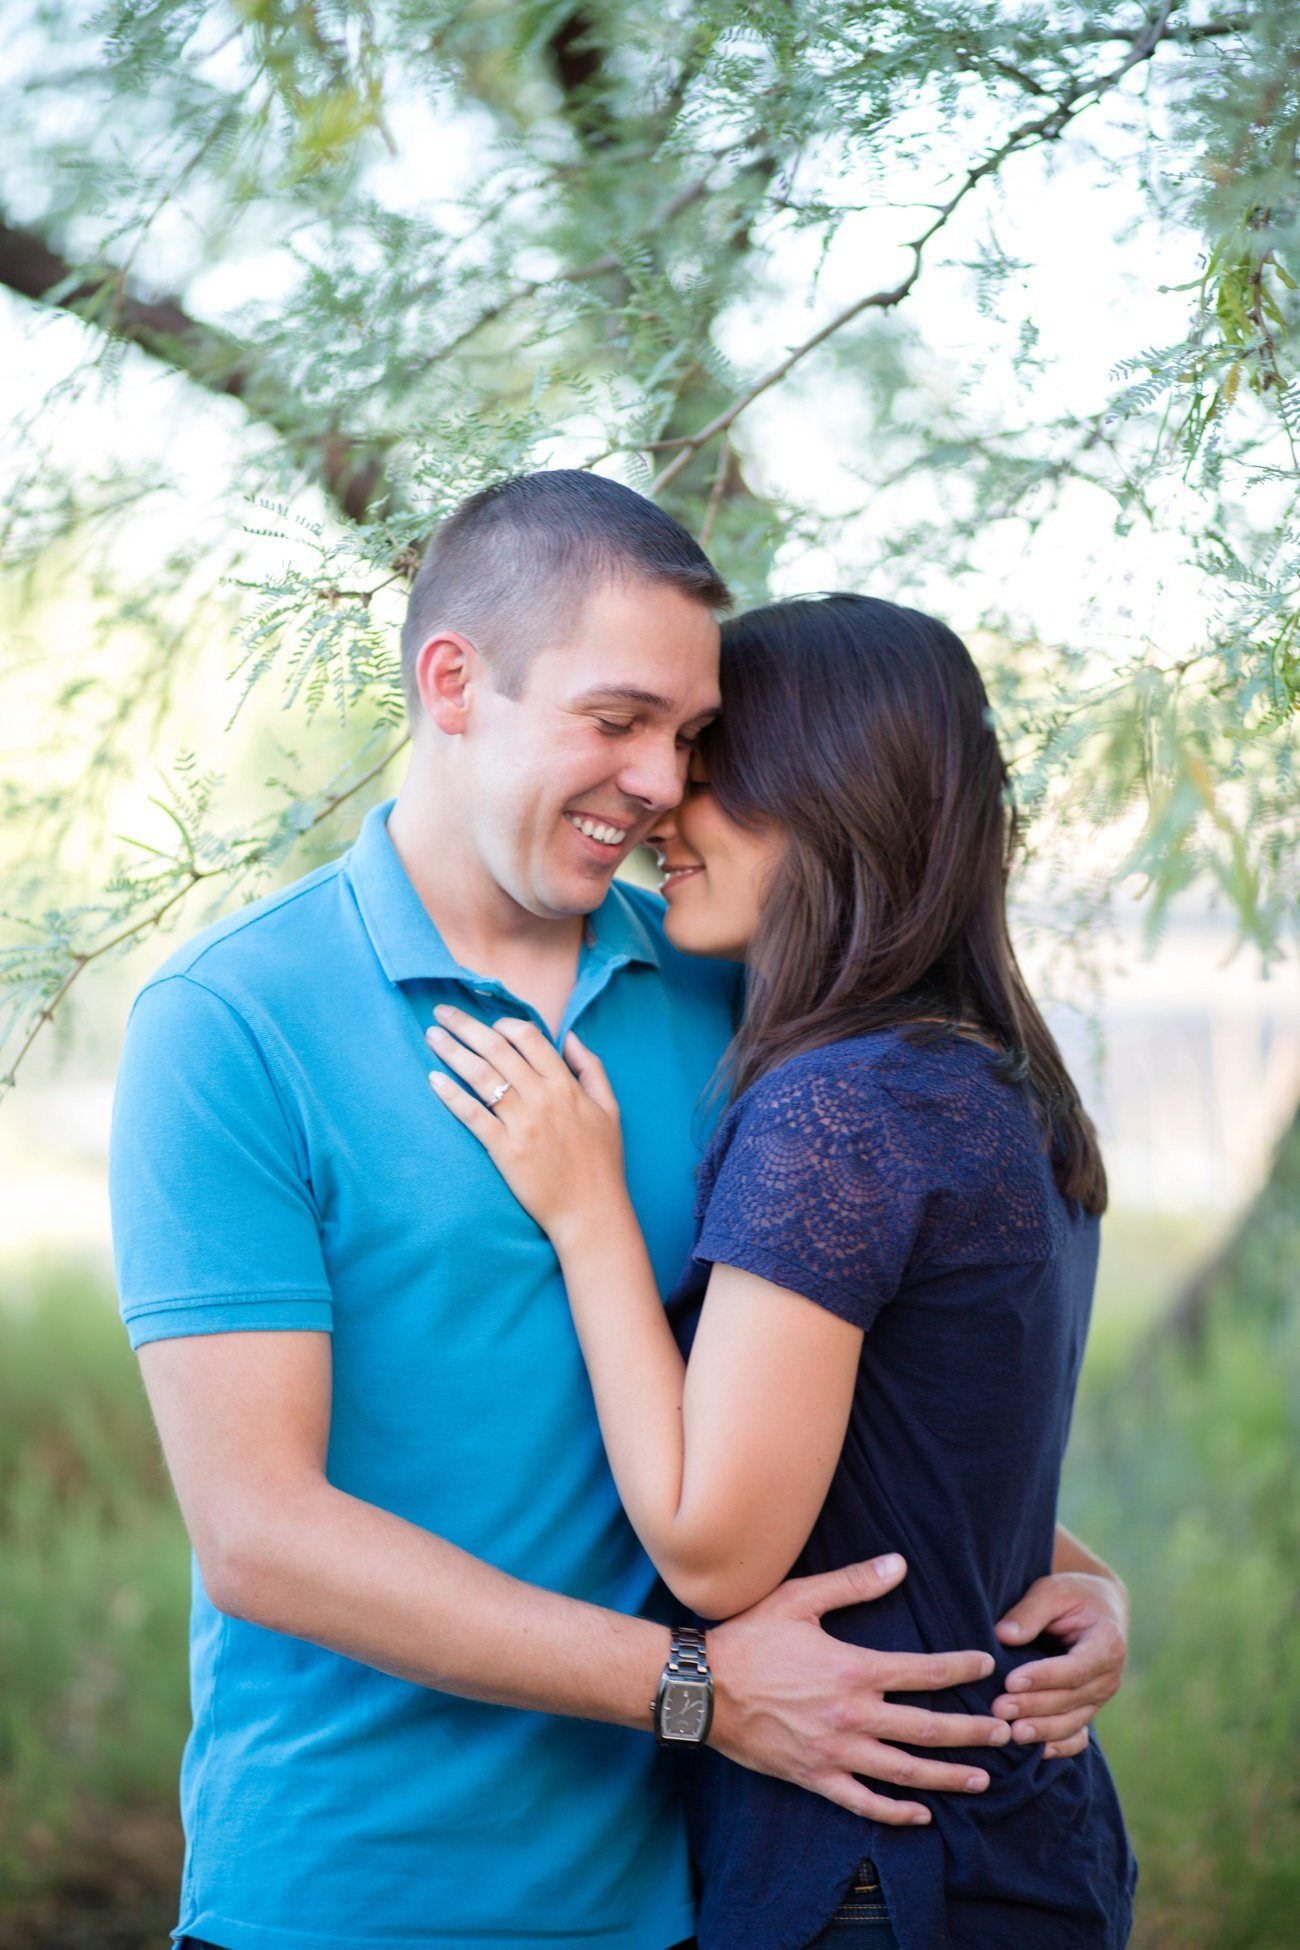 Engagements Colorado Springs Engagement Photographer Wedding Photos Pictures Portraits Arizona CO Denver Manitou Springs Scottsdale AZ 2016-06-27_0011